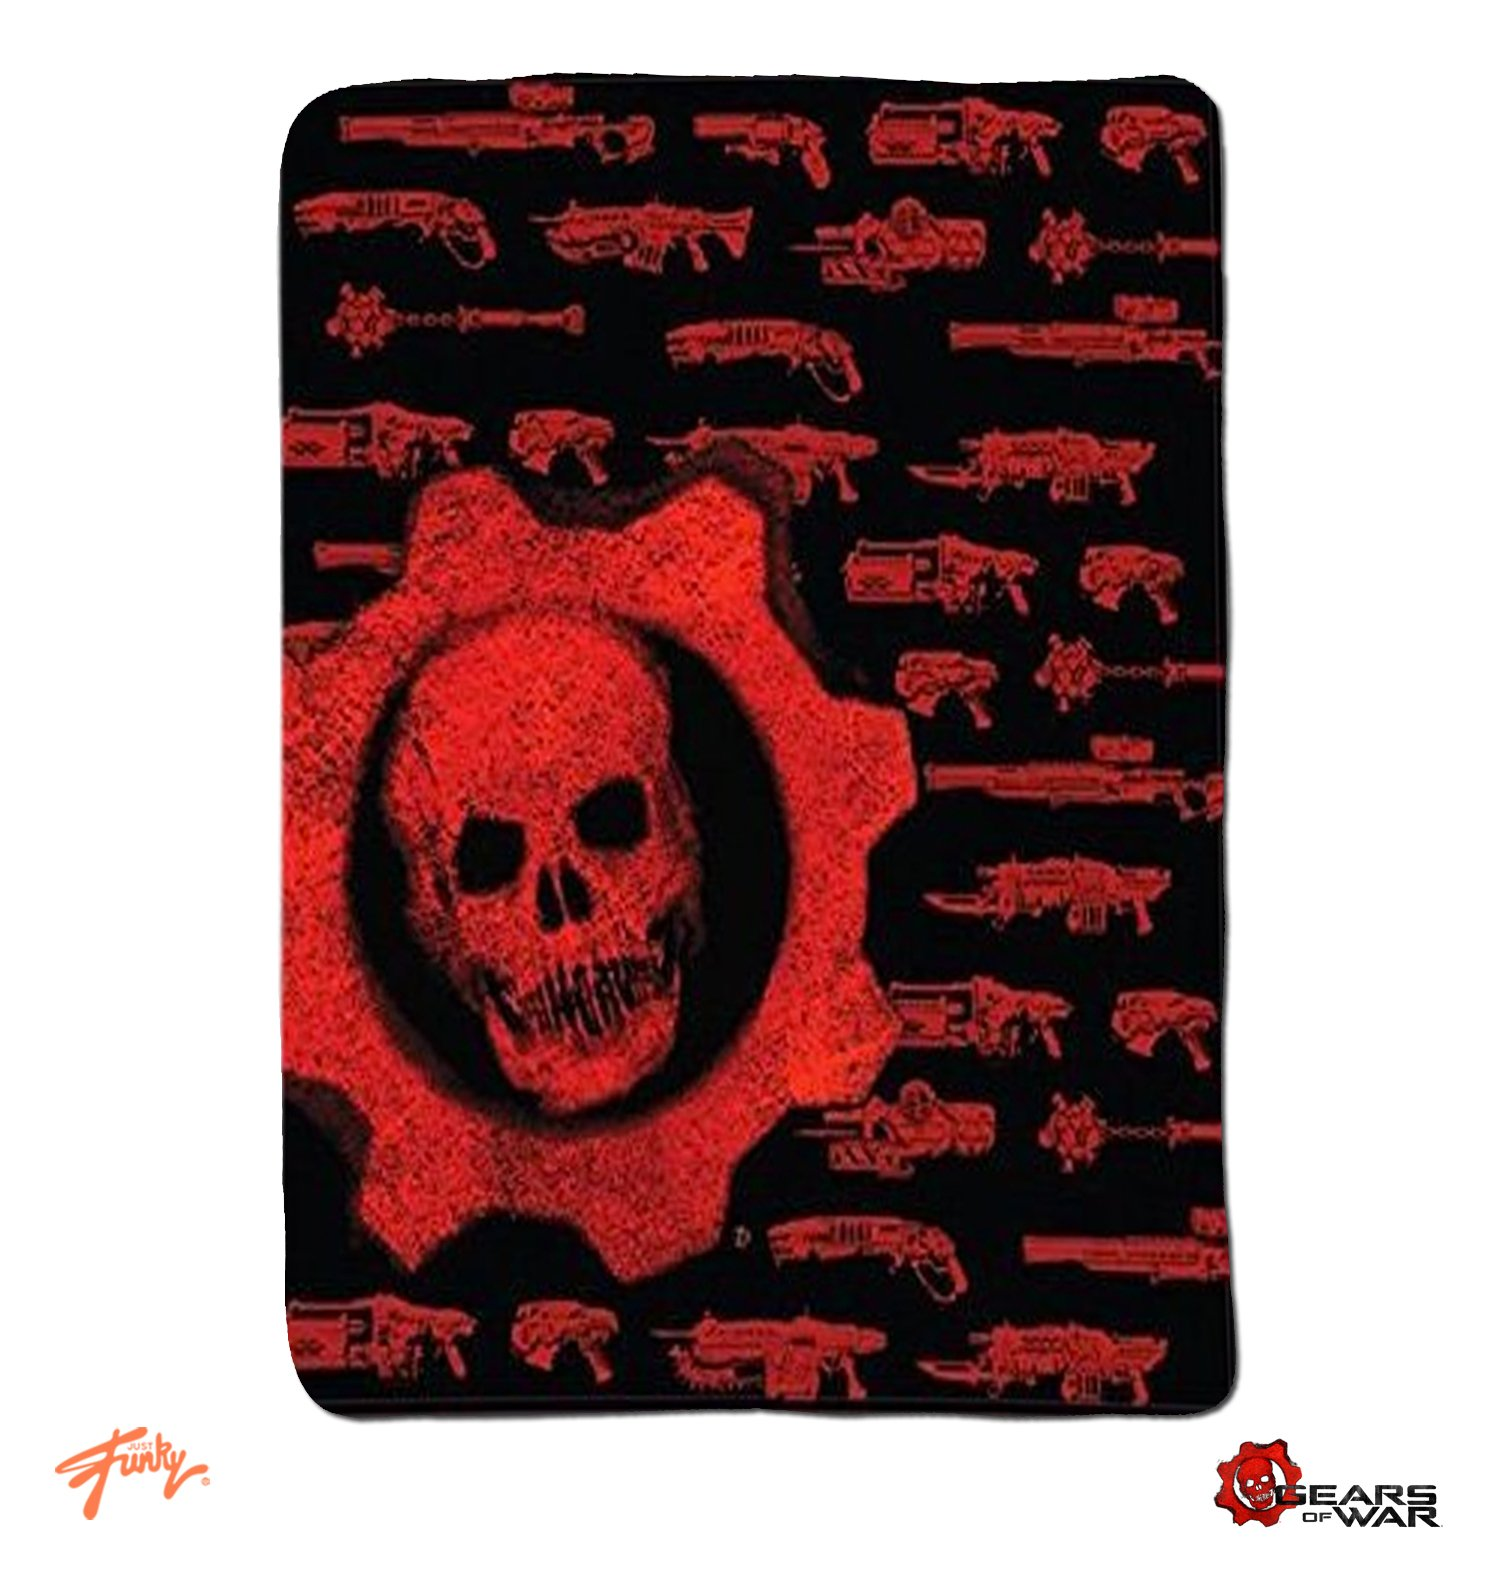 JUST FUNKY OFFICIAL Gears of War (Xbox Game) Skull & Weapons Fleece Throw Blanket/Tapestries Decorative Wall Hanging - Gift, Sofa/Bed Kids Blanket, 50''x60''